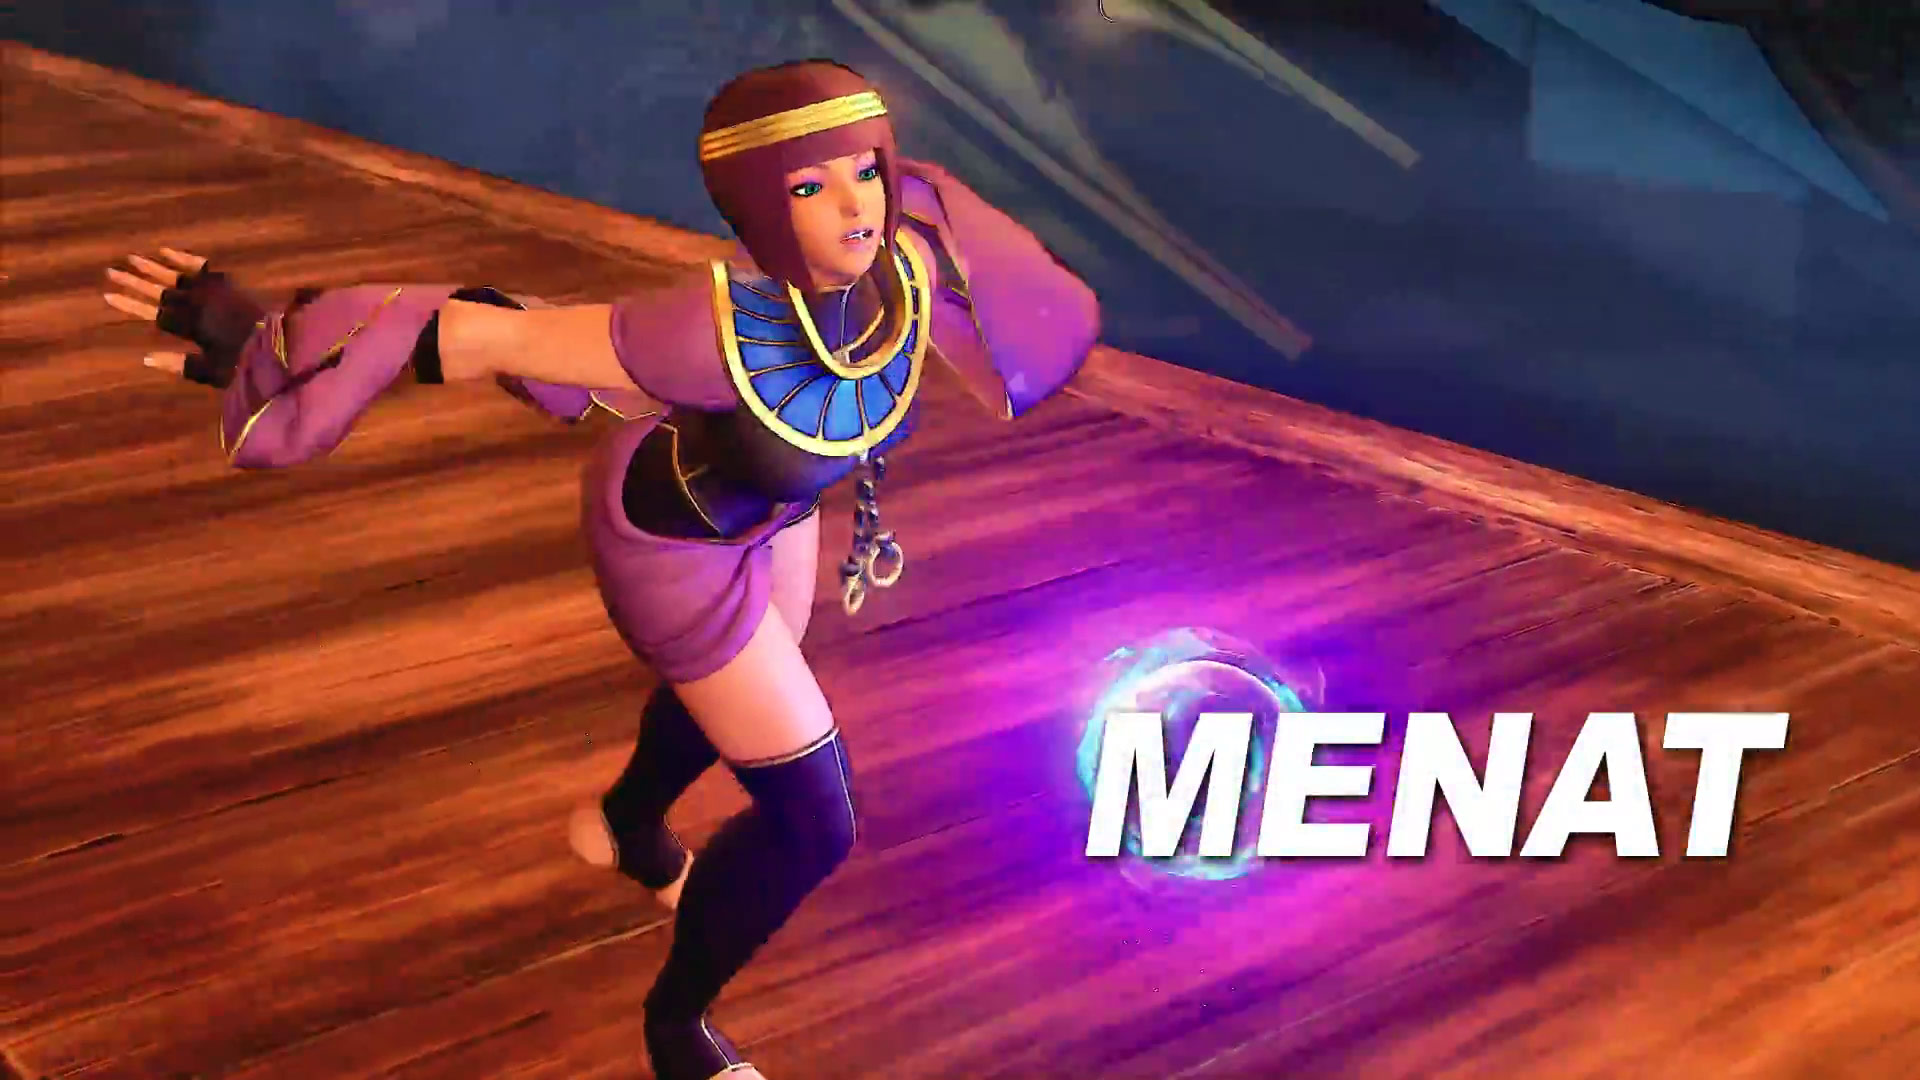 Menat announced for Street Fighter 5 reveal images 2 out of 6 image gallery